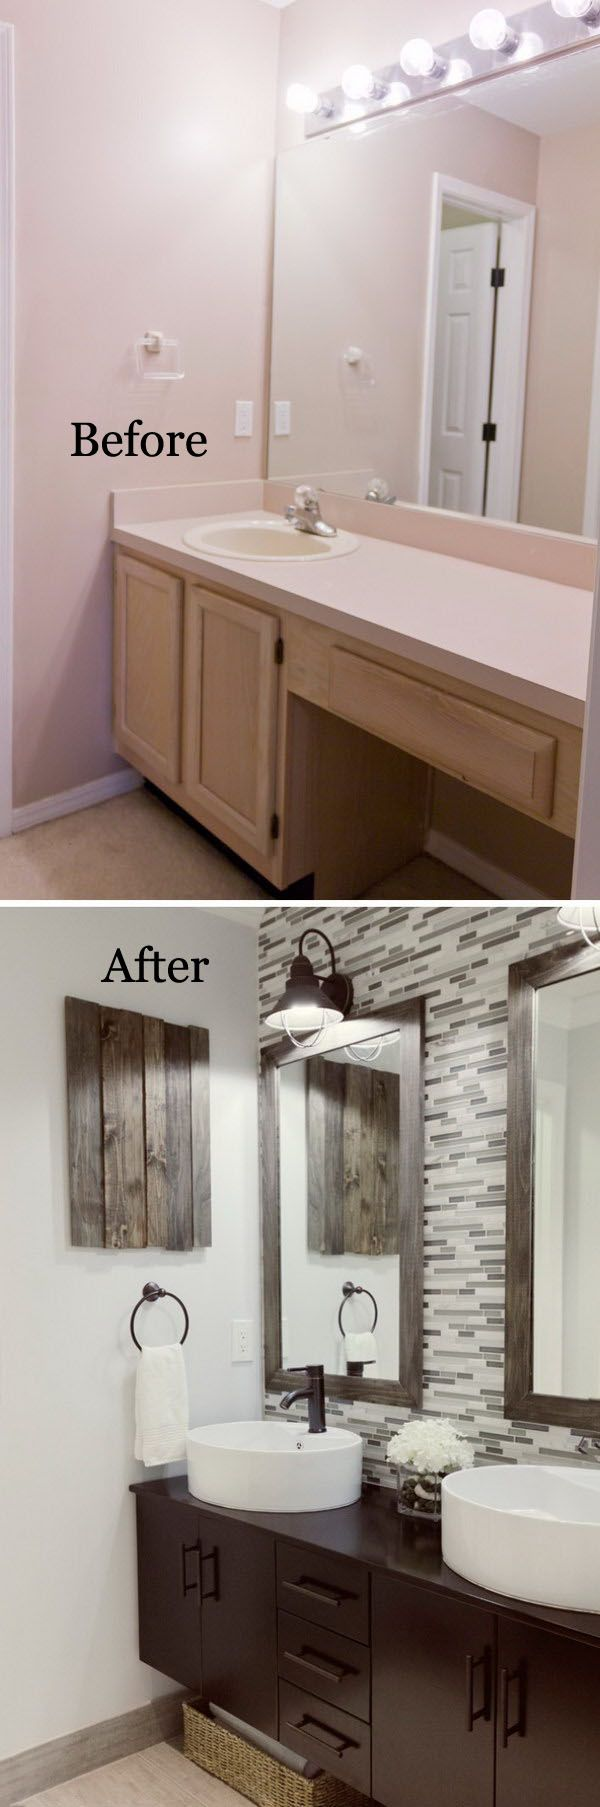 Blukatkraft Diy Quick Easy Wall Art For Bathroom: 28 Best Budget Friendly Bathroom Makeover Ideas And